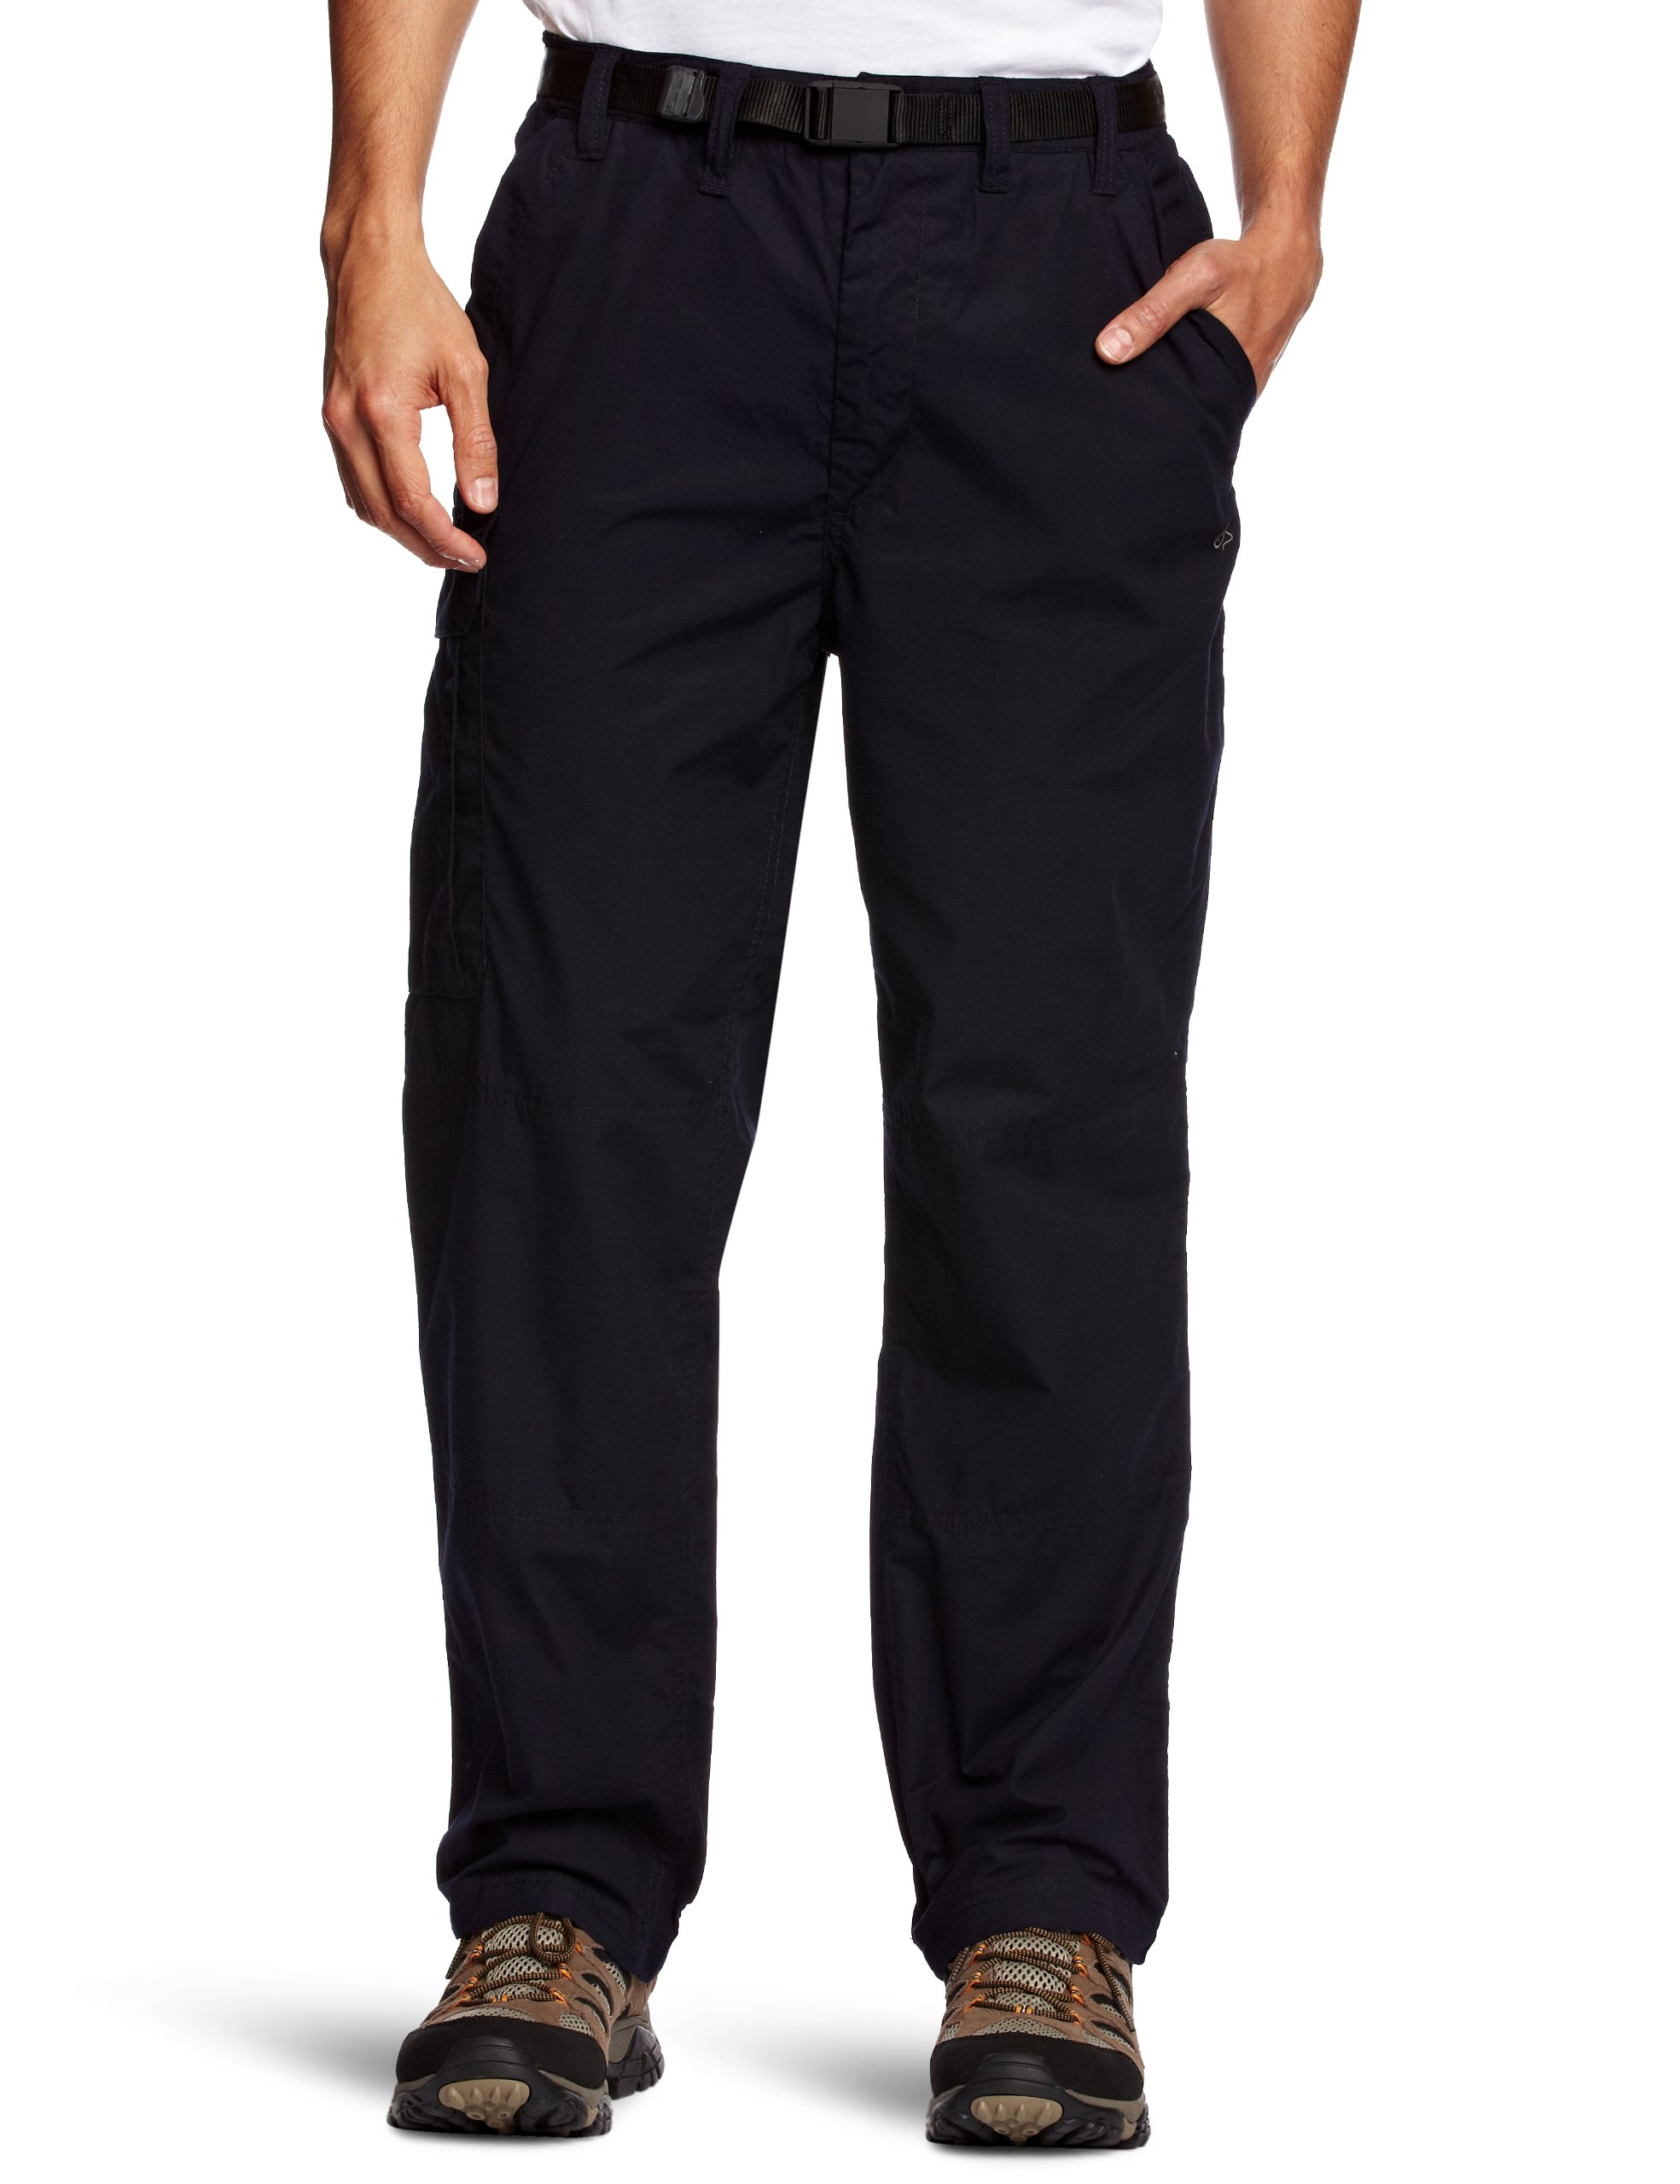 Craghoppers UV Protection Classic Kiwi Men's Outdoor Walking Trouser available in DK Navy - Size 30 Short